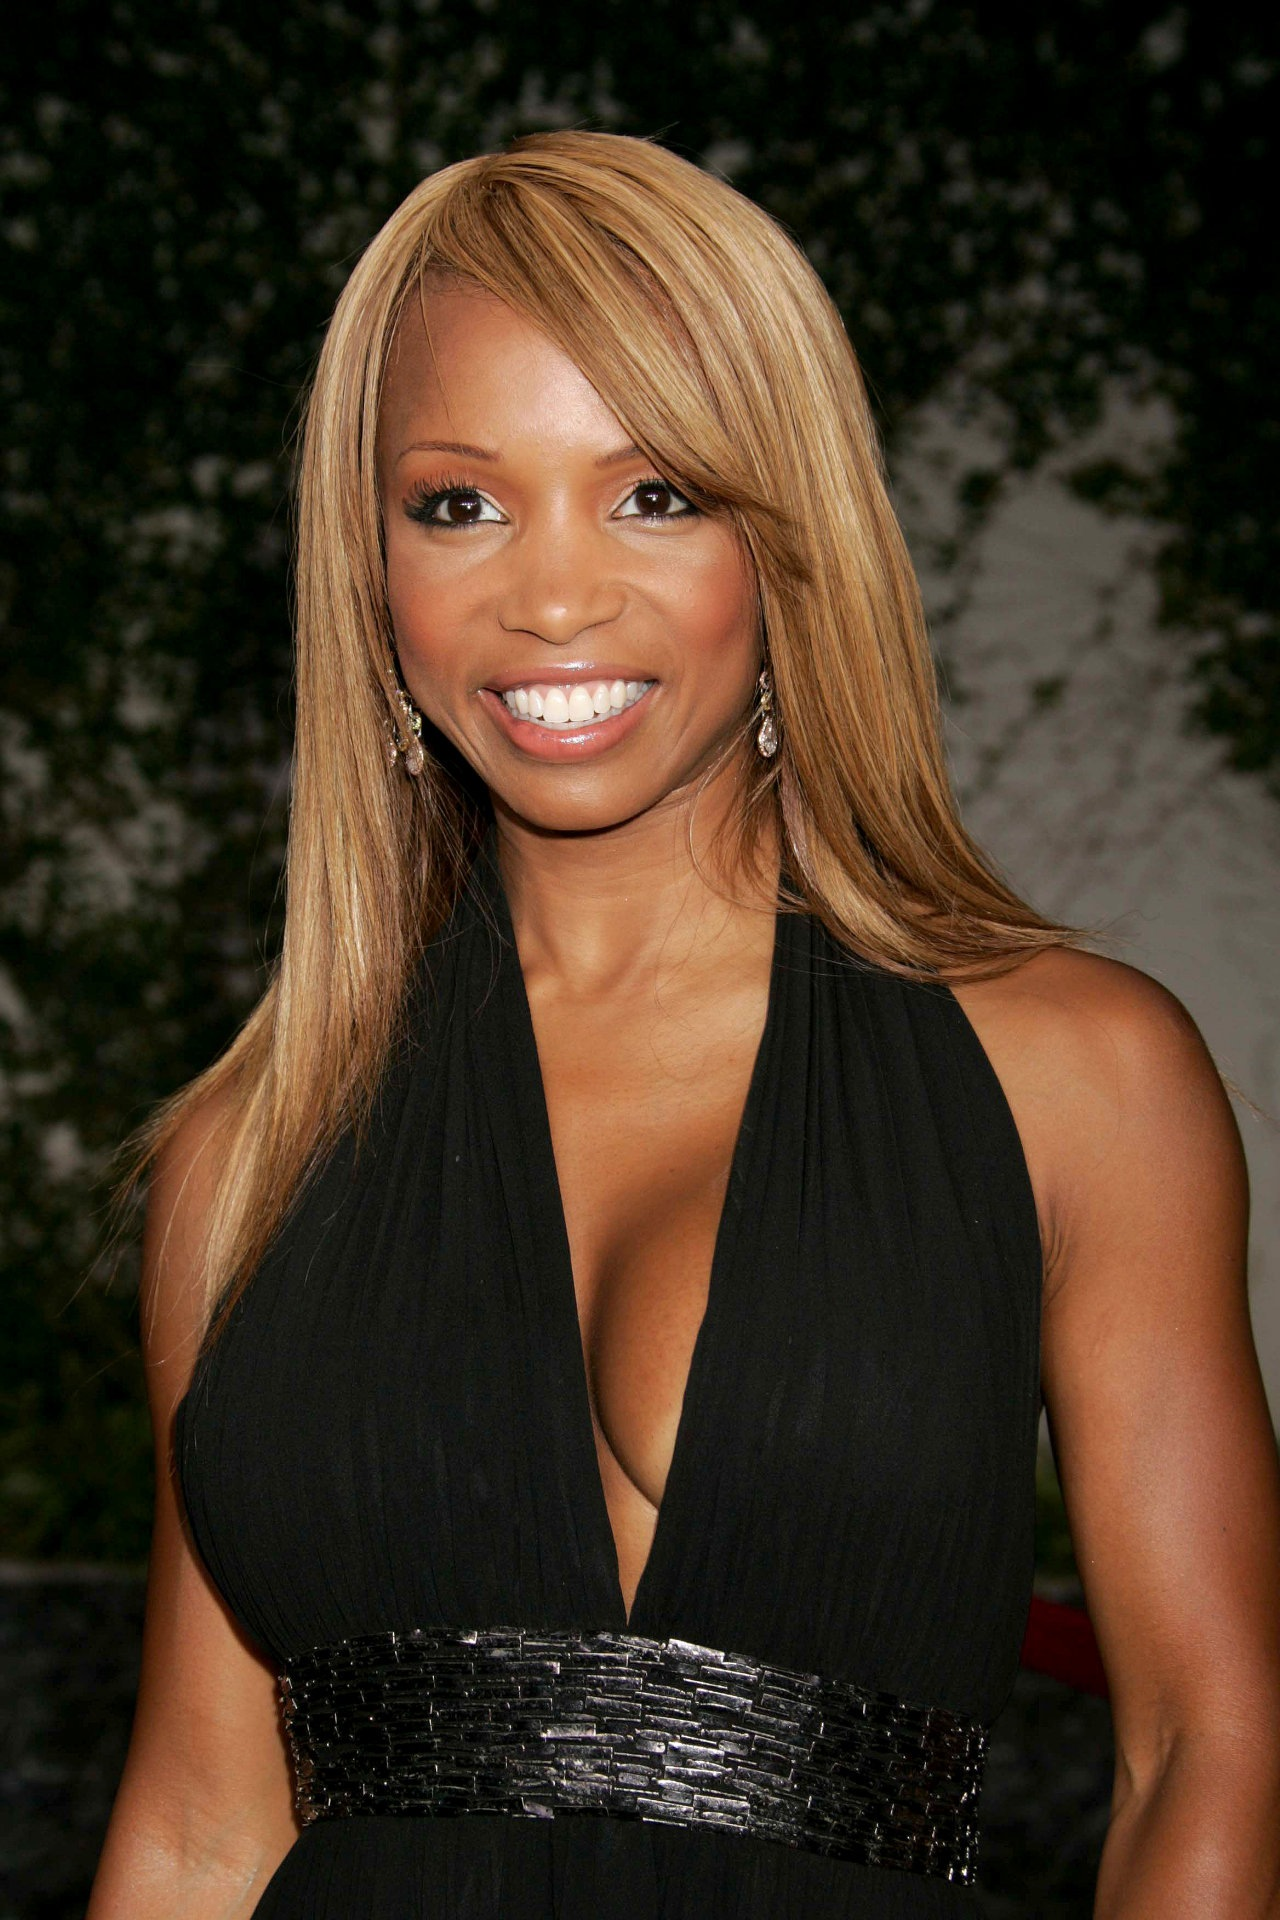 Pictures Elise Neal nude (13 photos), Ass, Fappening, Boobs, underwear 2006